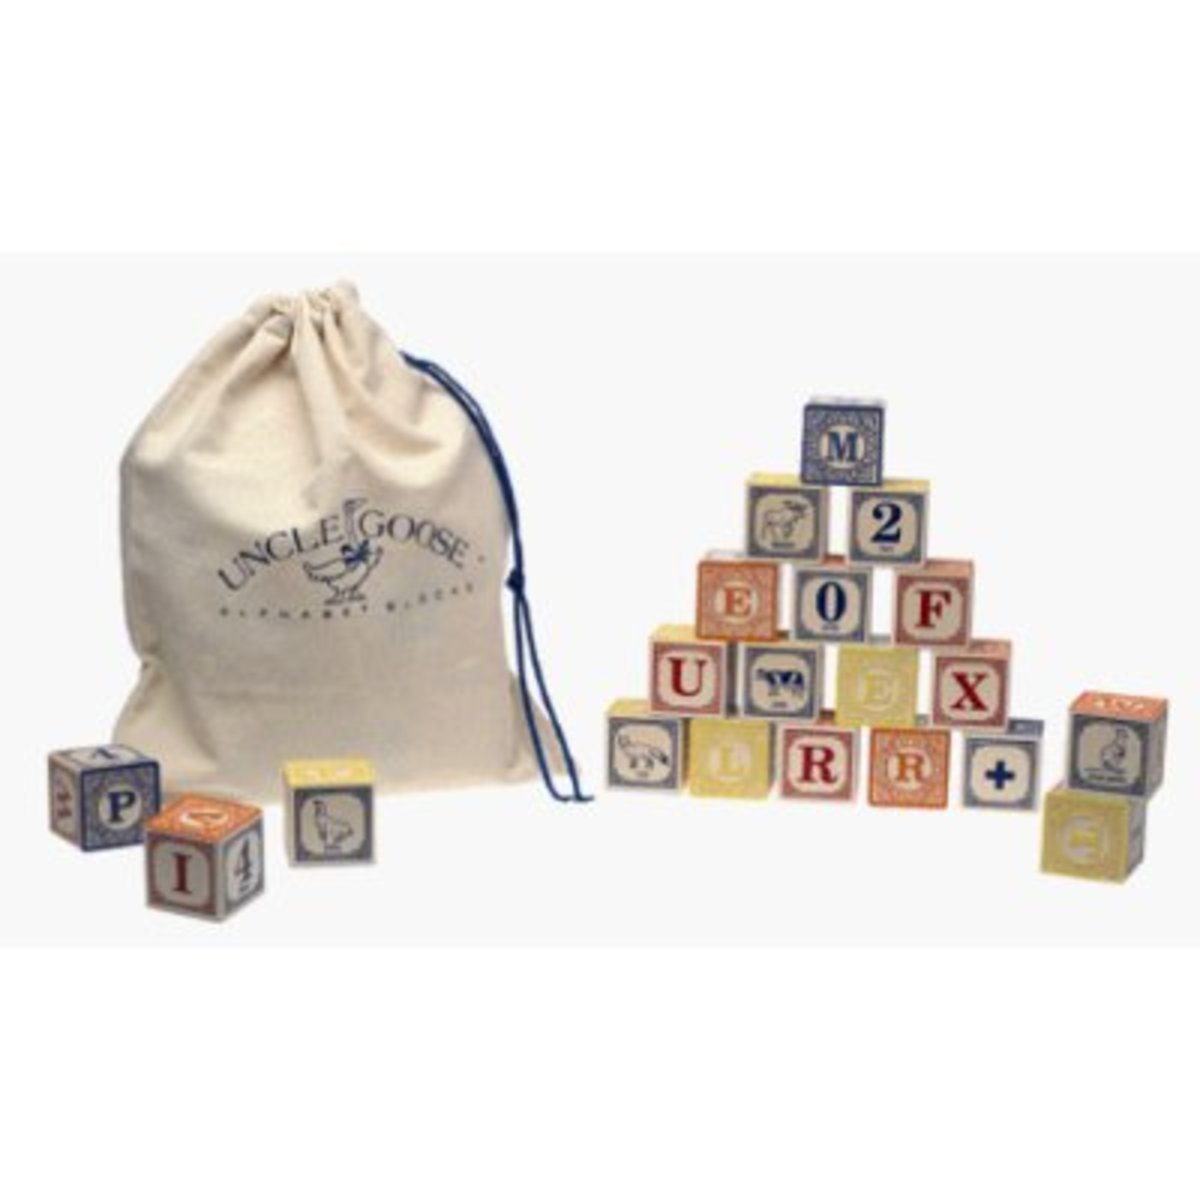 Alphabet blocks are a popular time-tested choice for older toddlers. Check for paint toxicity.